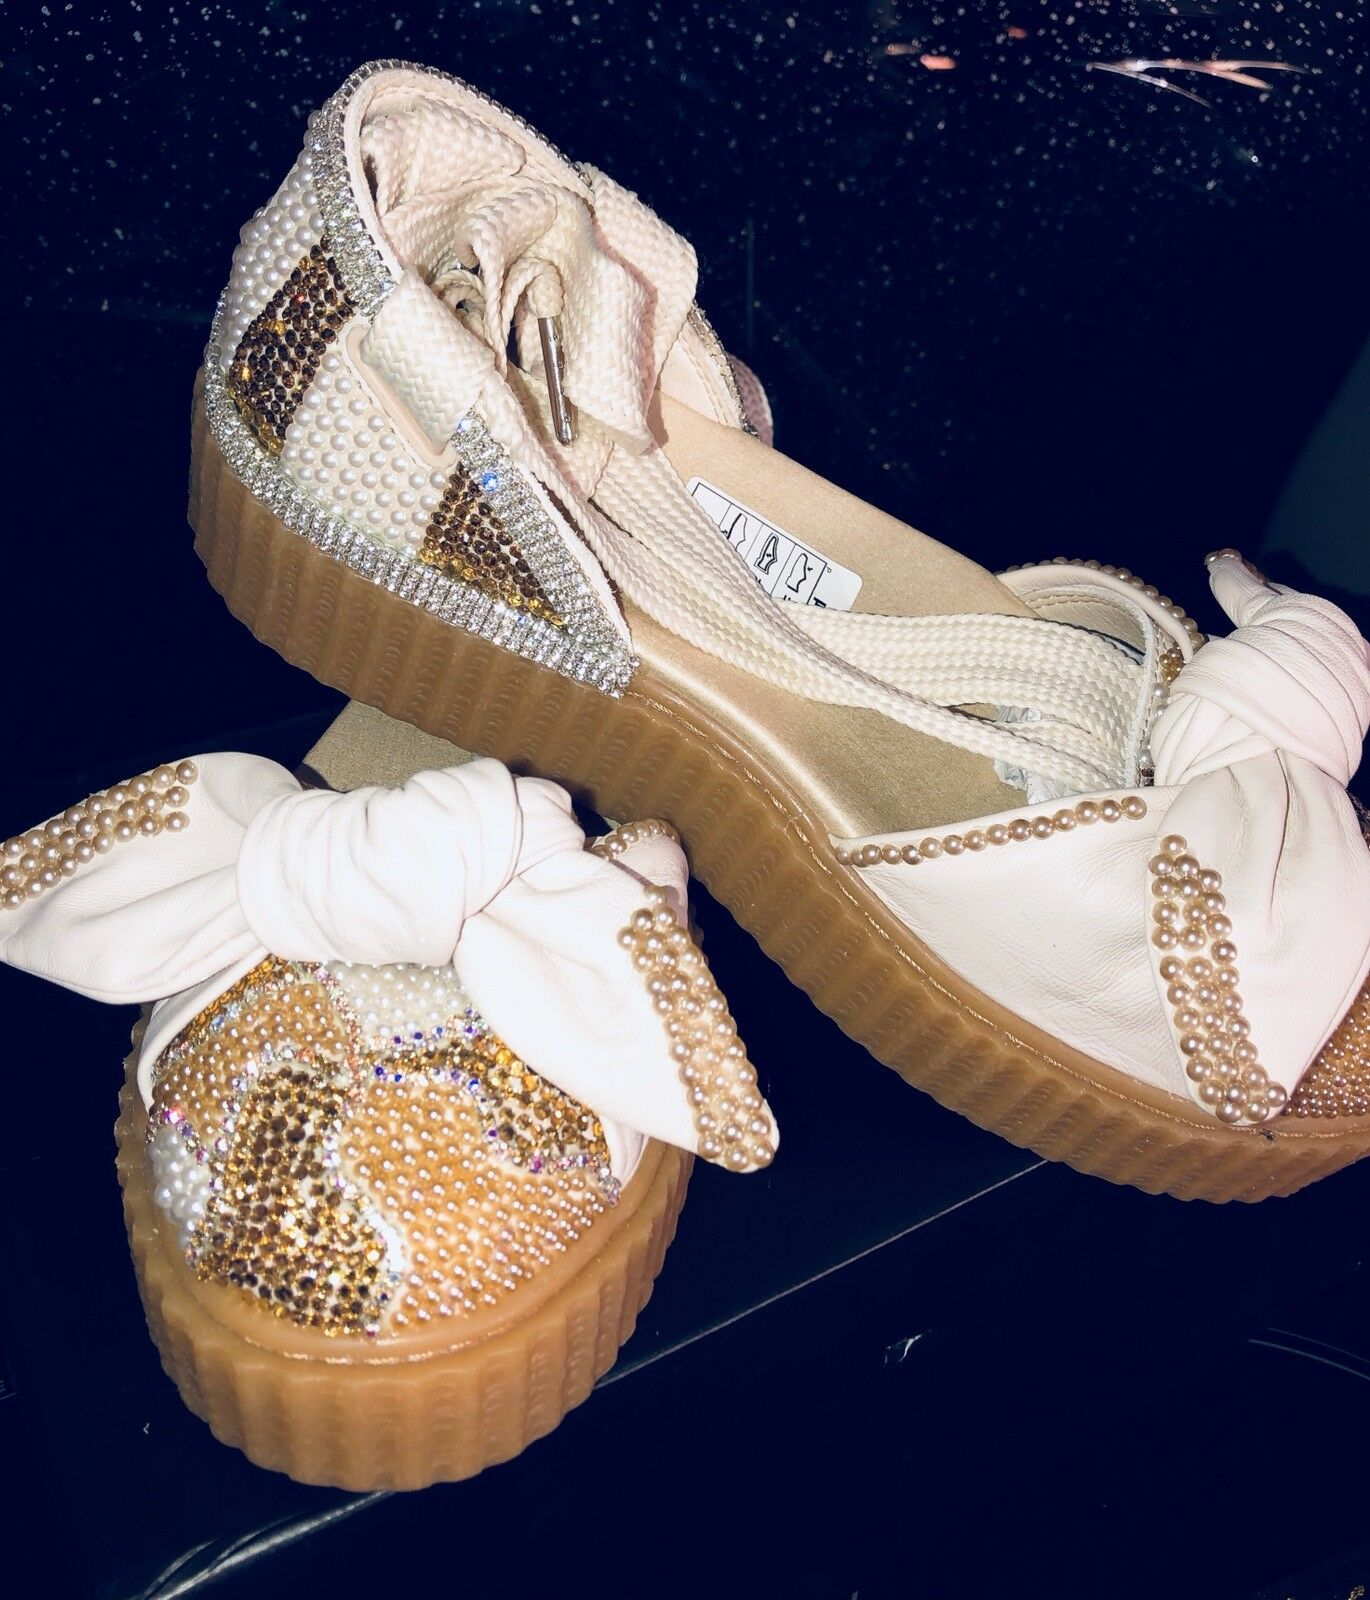 FINAL Creeper REDUCTION Customised Crystal Puma X Fenty Creeper FINAL Ballet Lace Rihanna 5 b2eb8c